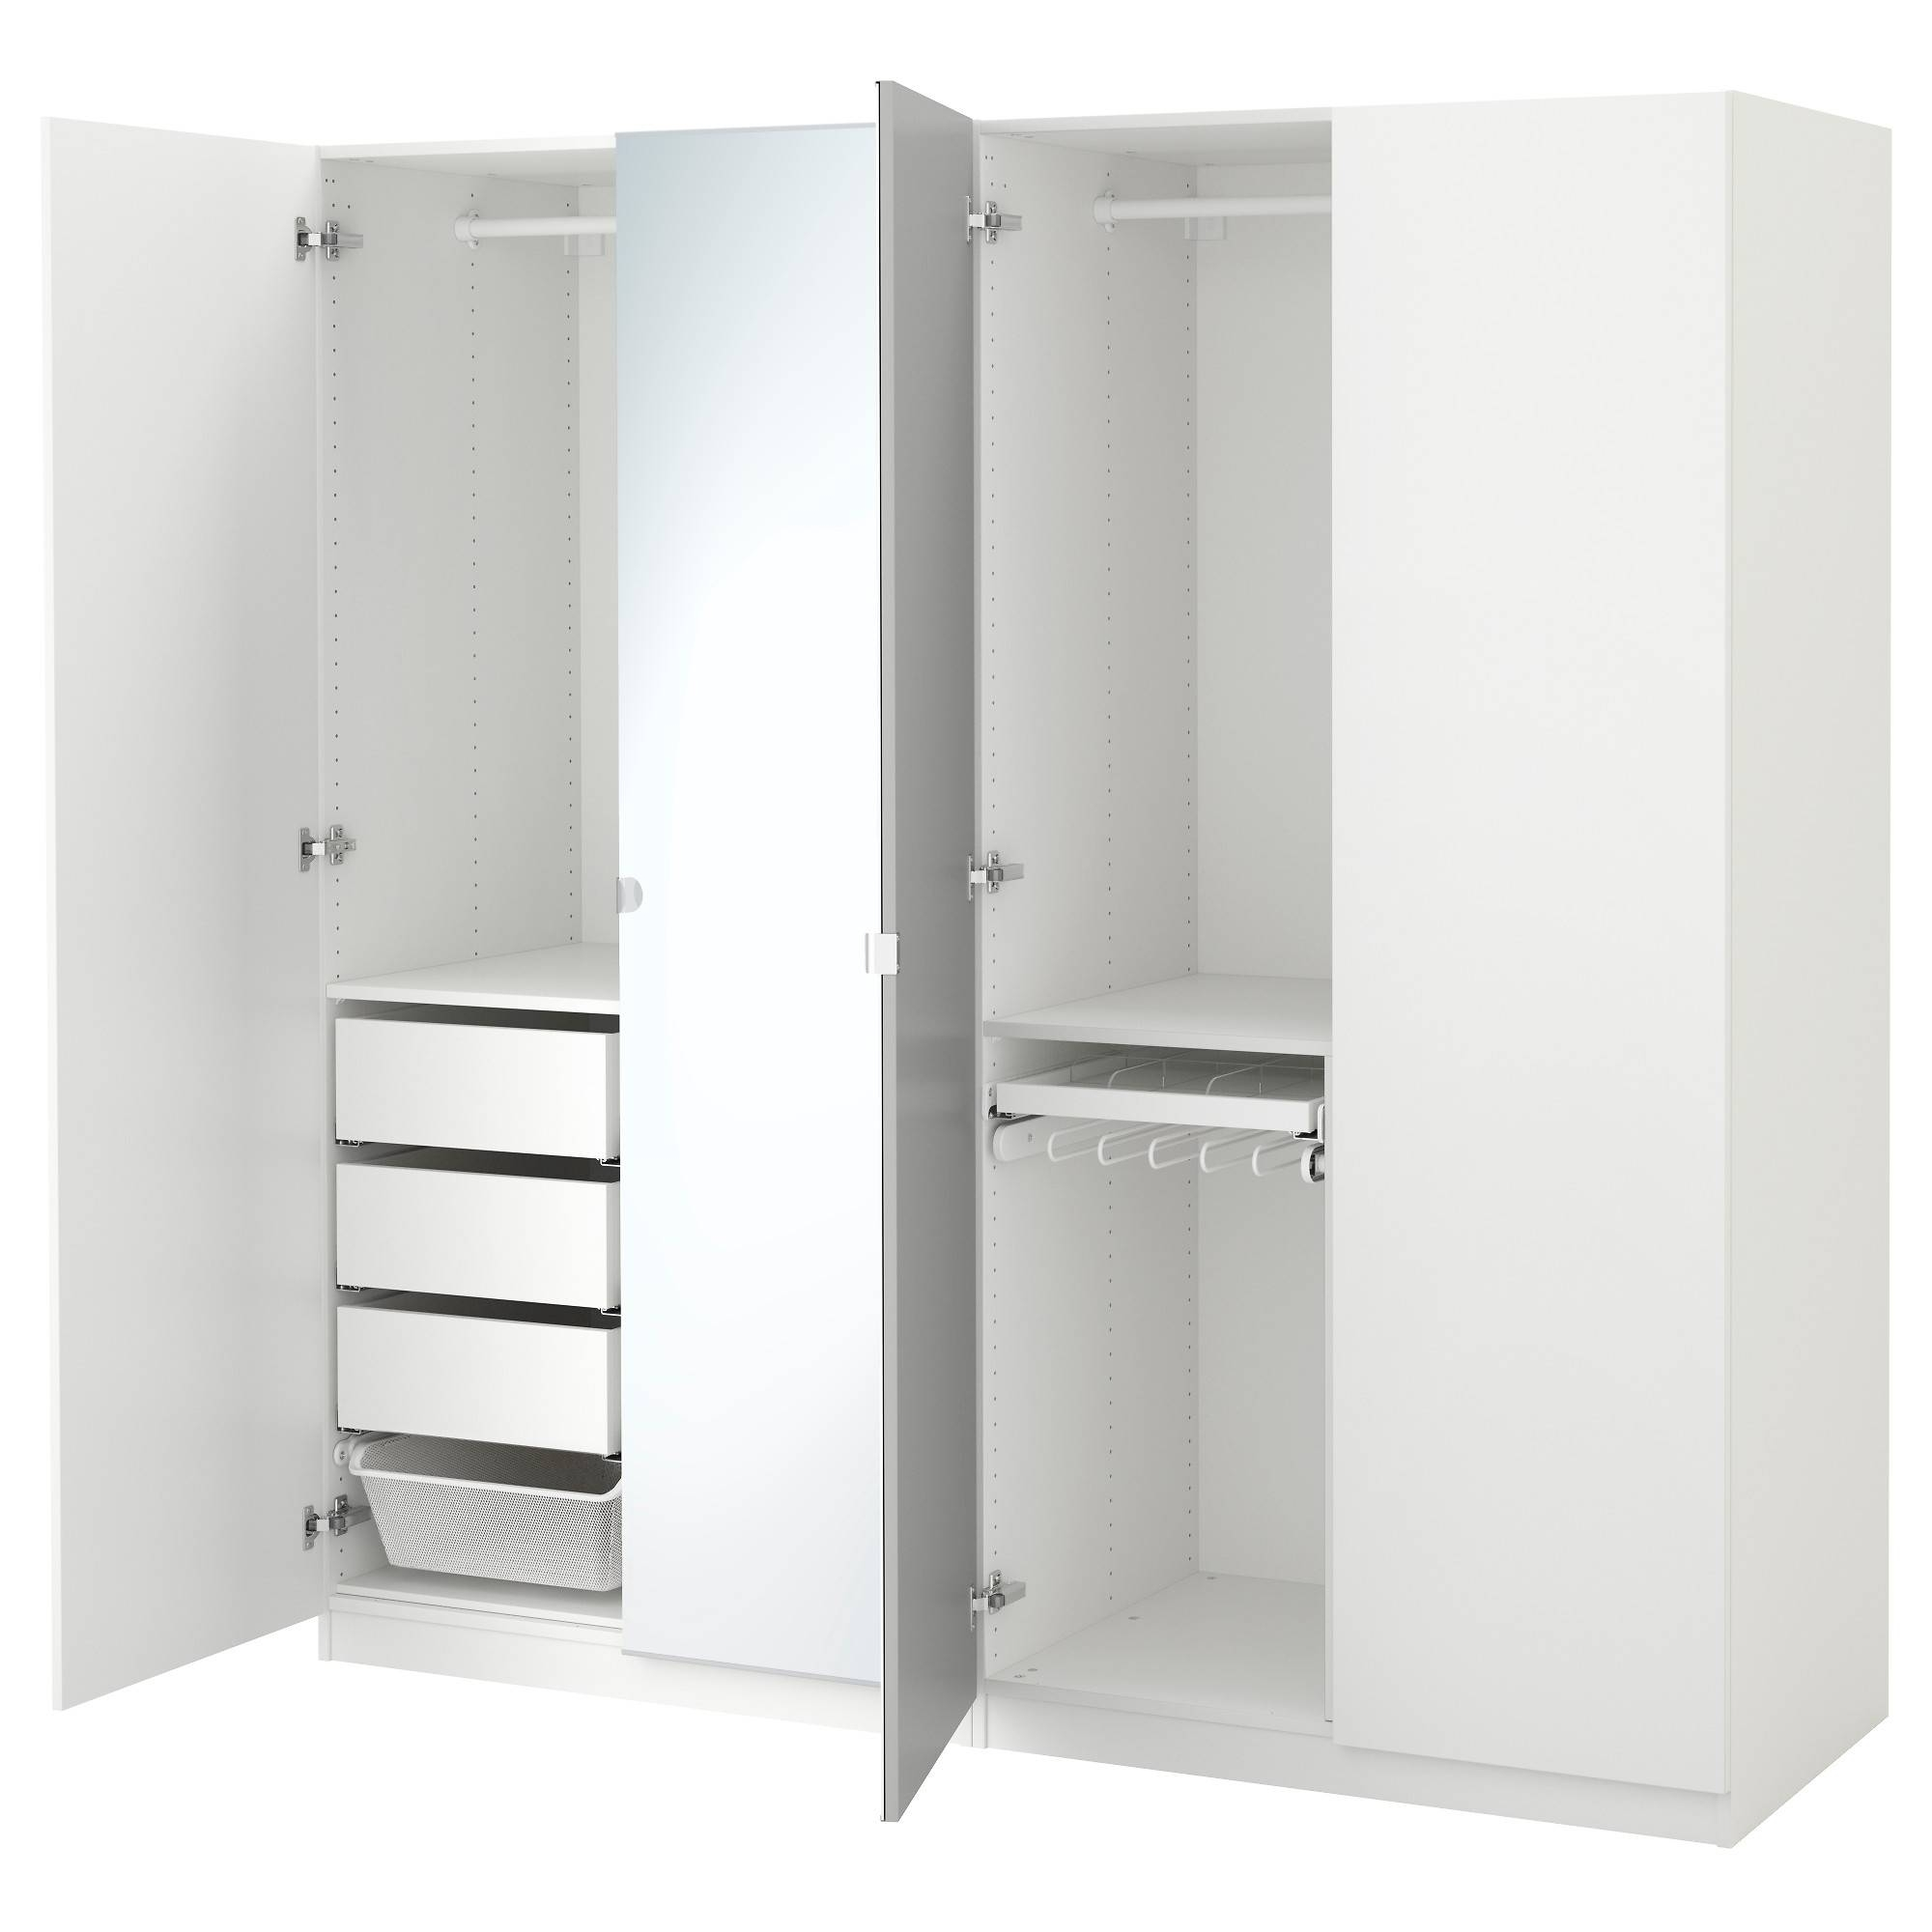 Wardrobes, Armoires & Closets - Ikea with regard to Wardrobe Drawers and Shelves Ikea (Image 29 of 30)